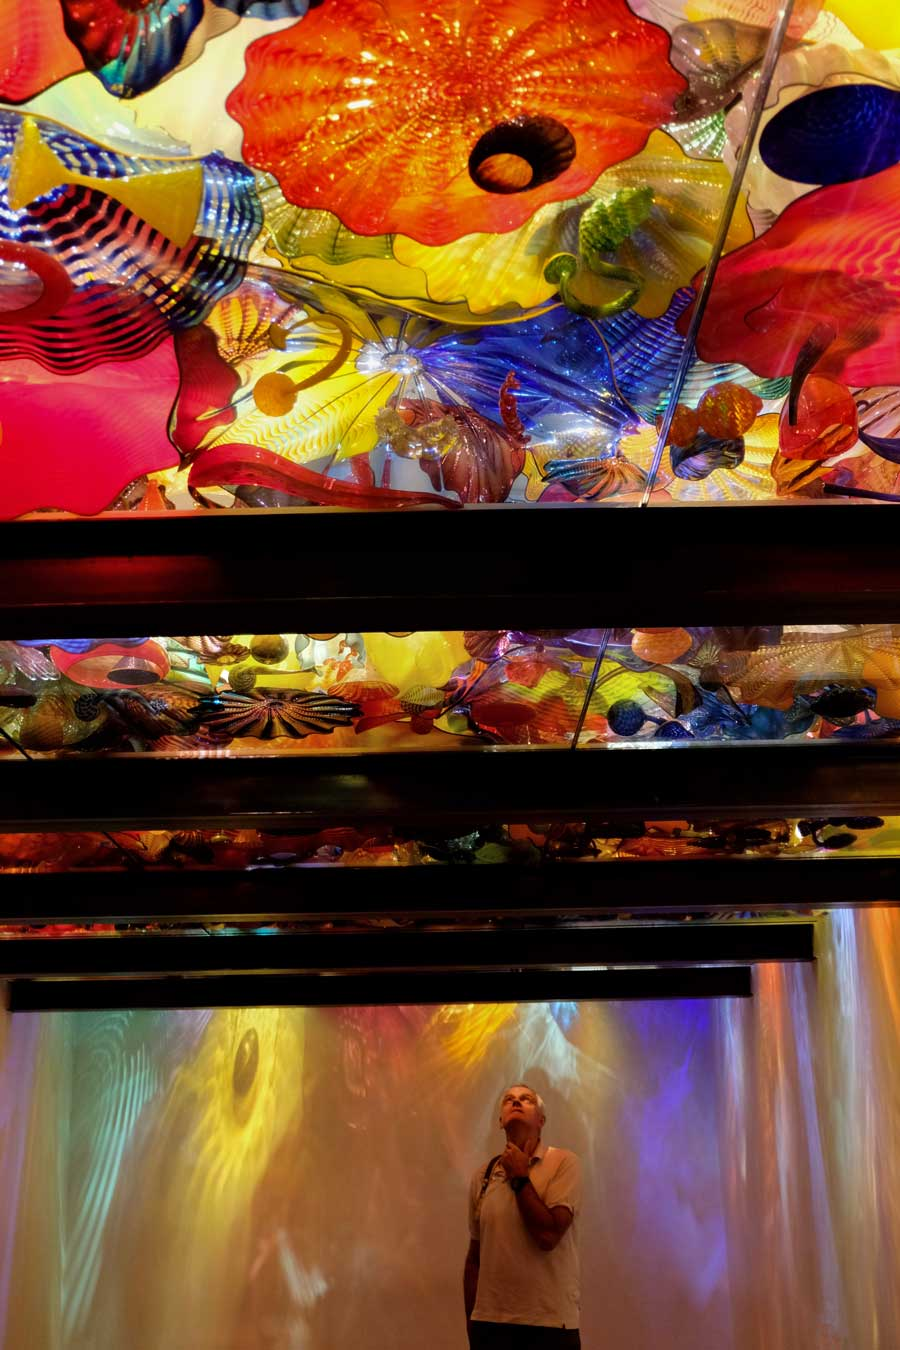 Im Farbenrausch, 'Chihuly Garden and Glass' Seattle